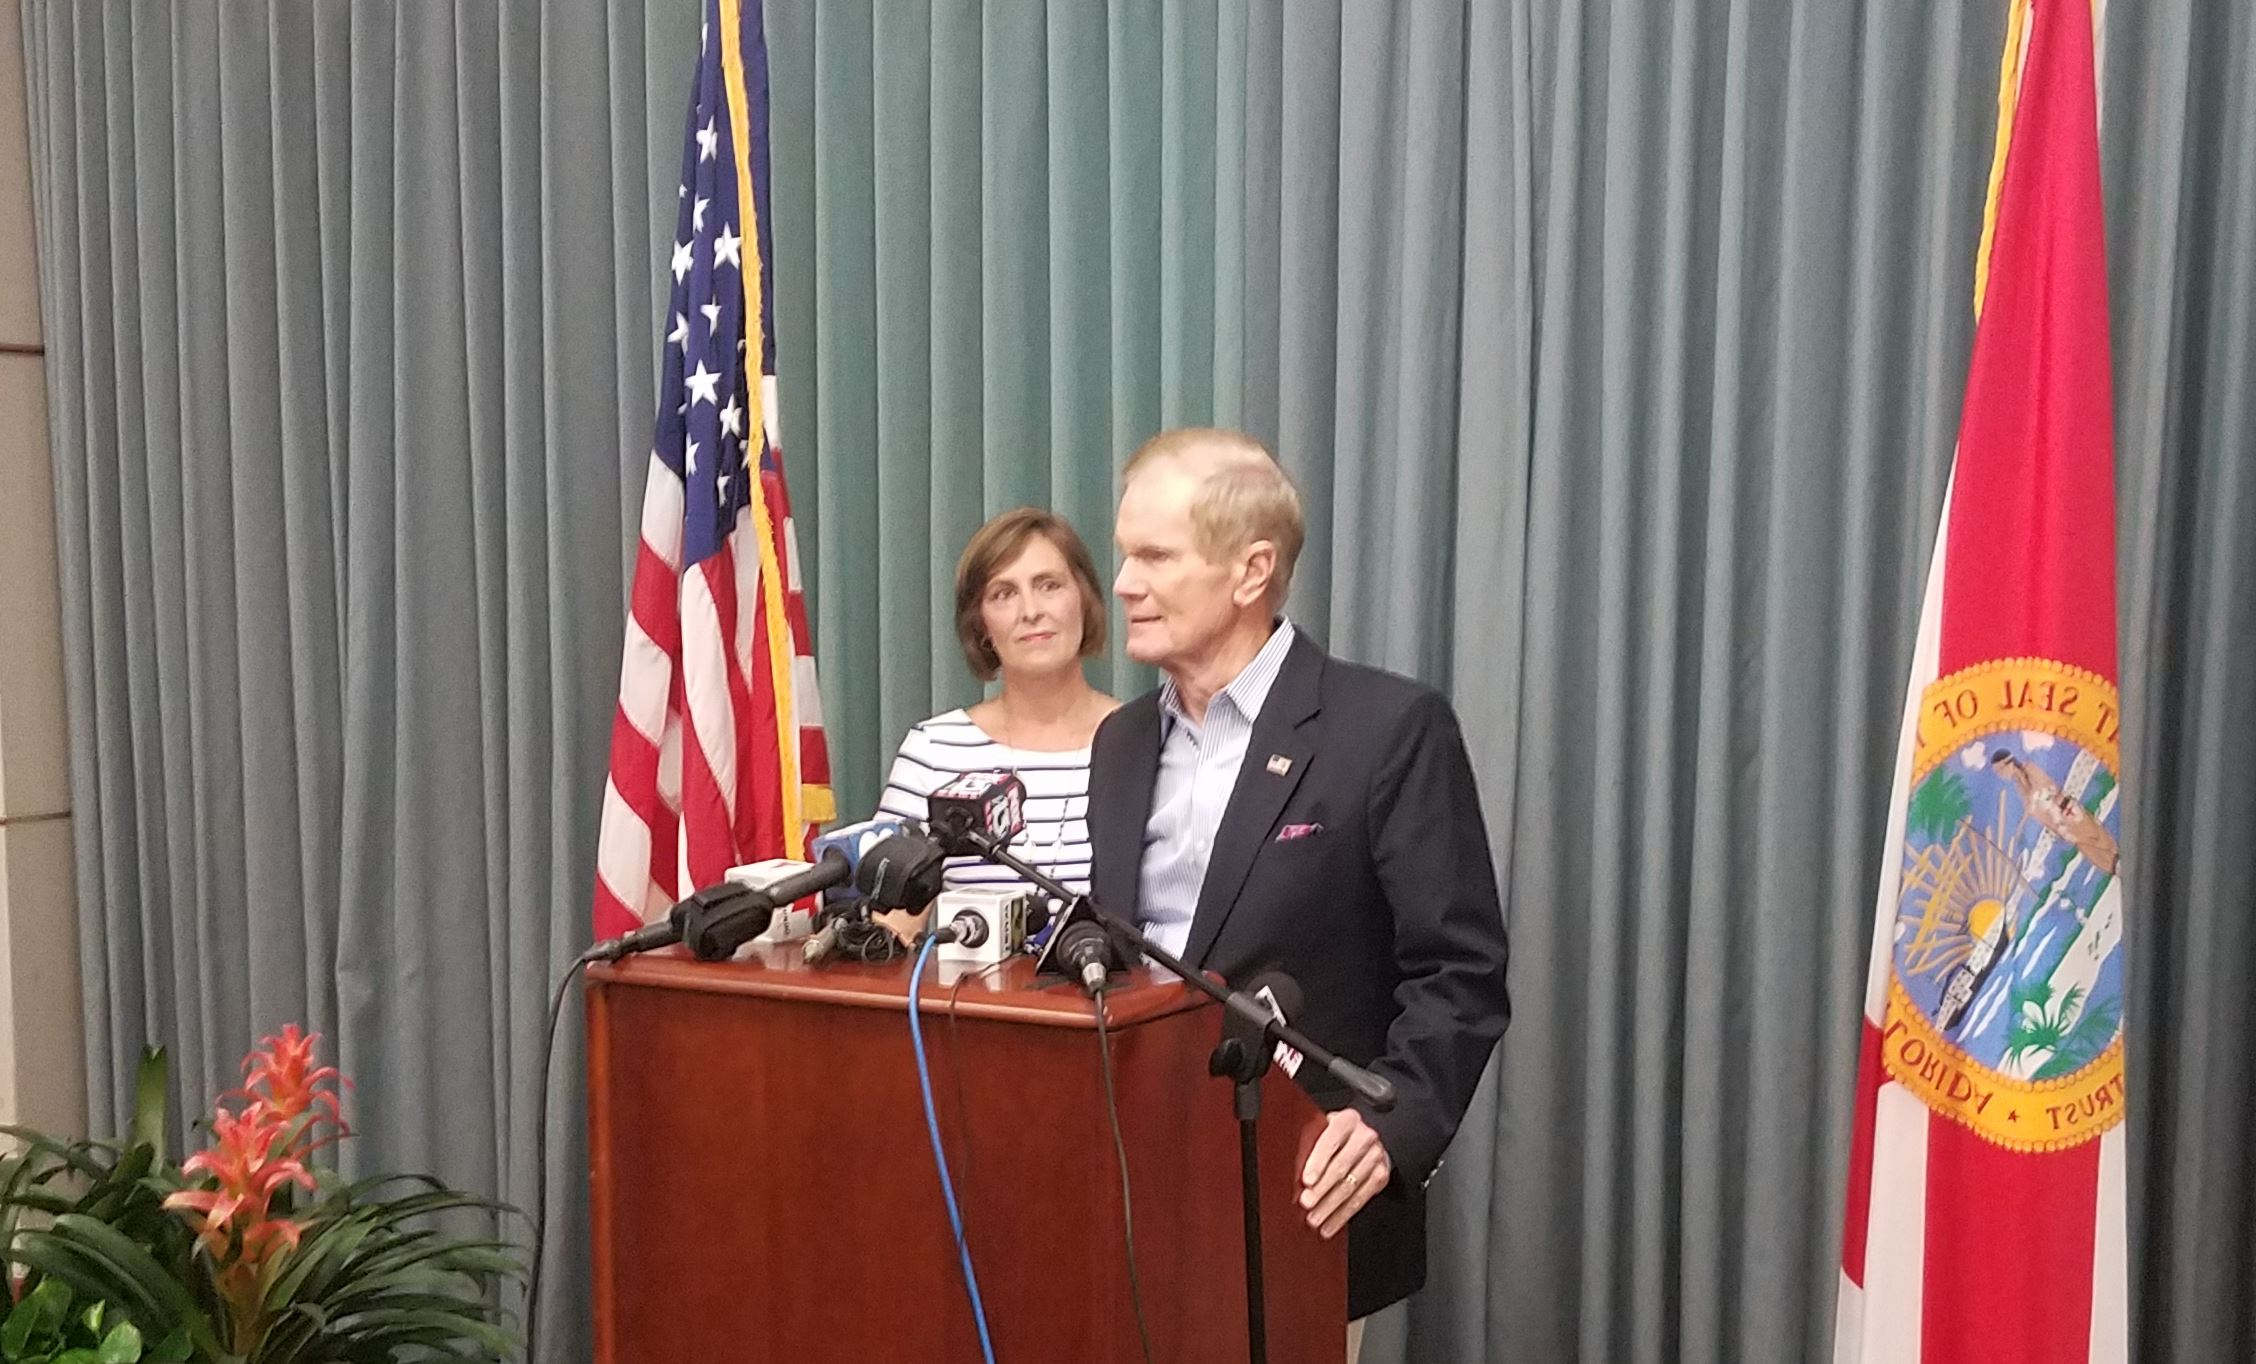 Kathy Castor Bill Nelson Children' Medical Services kid's health care